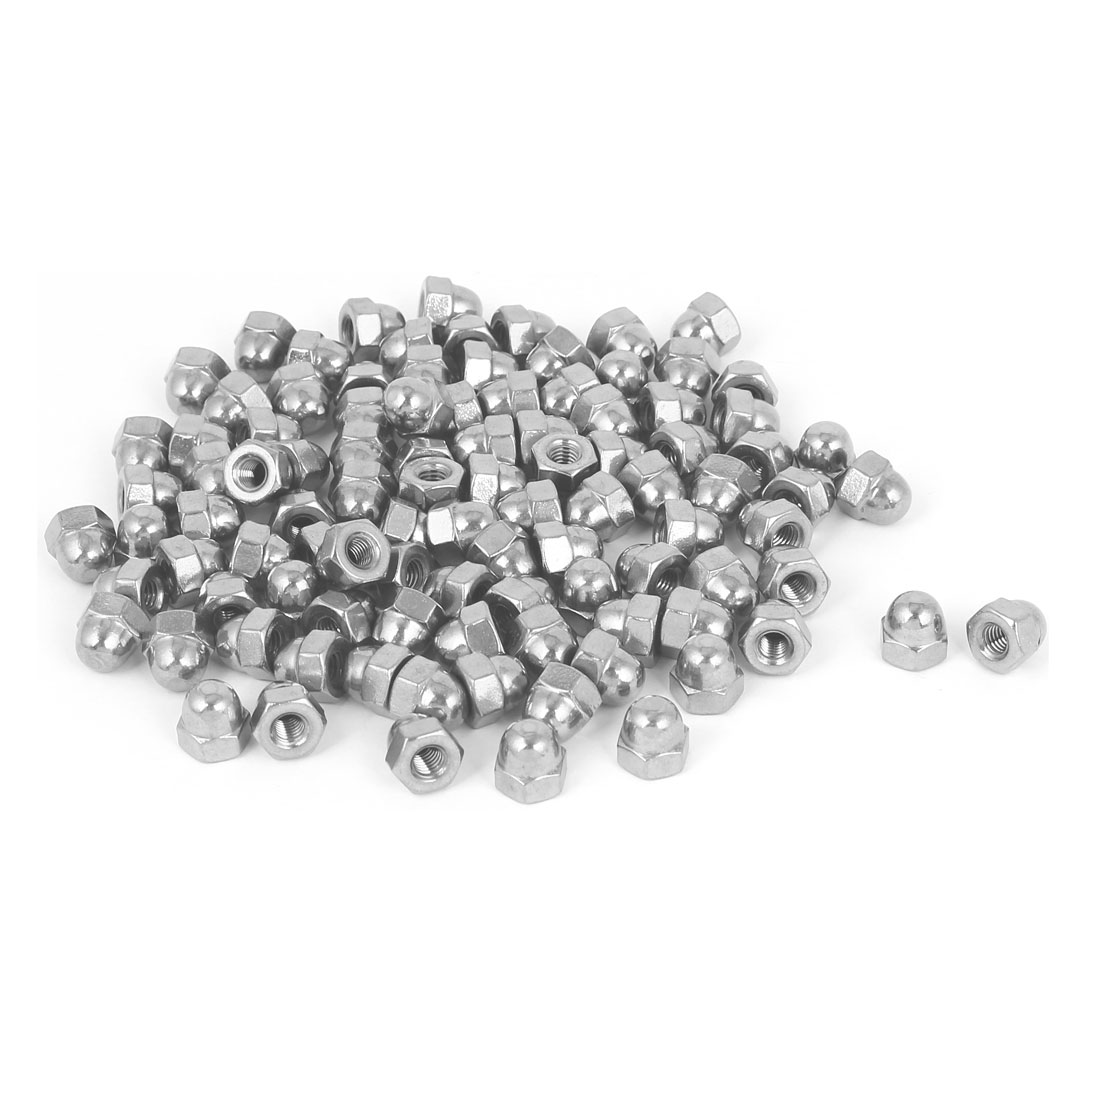 10#-32 304 Stainless Steel Dome Head Cap Cover Hexagon Nuts Silver Tone 100pcs